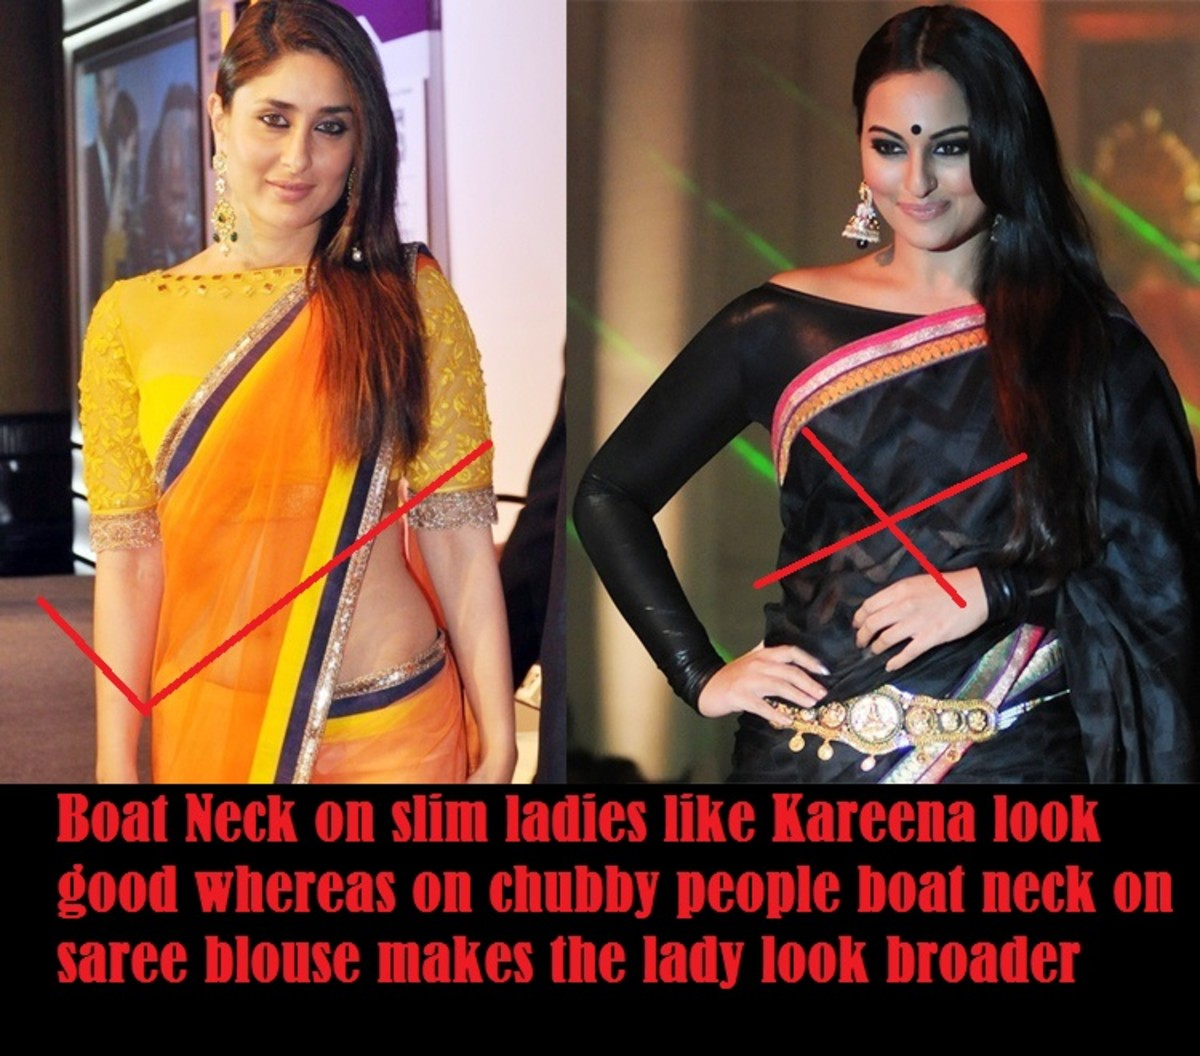 Boat neck on saree blouse to be avoided by fat women if they want to look slim